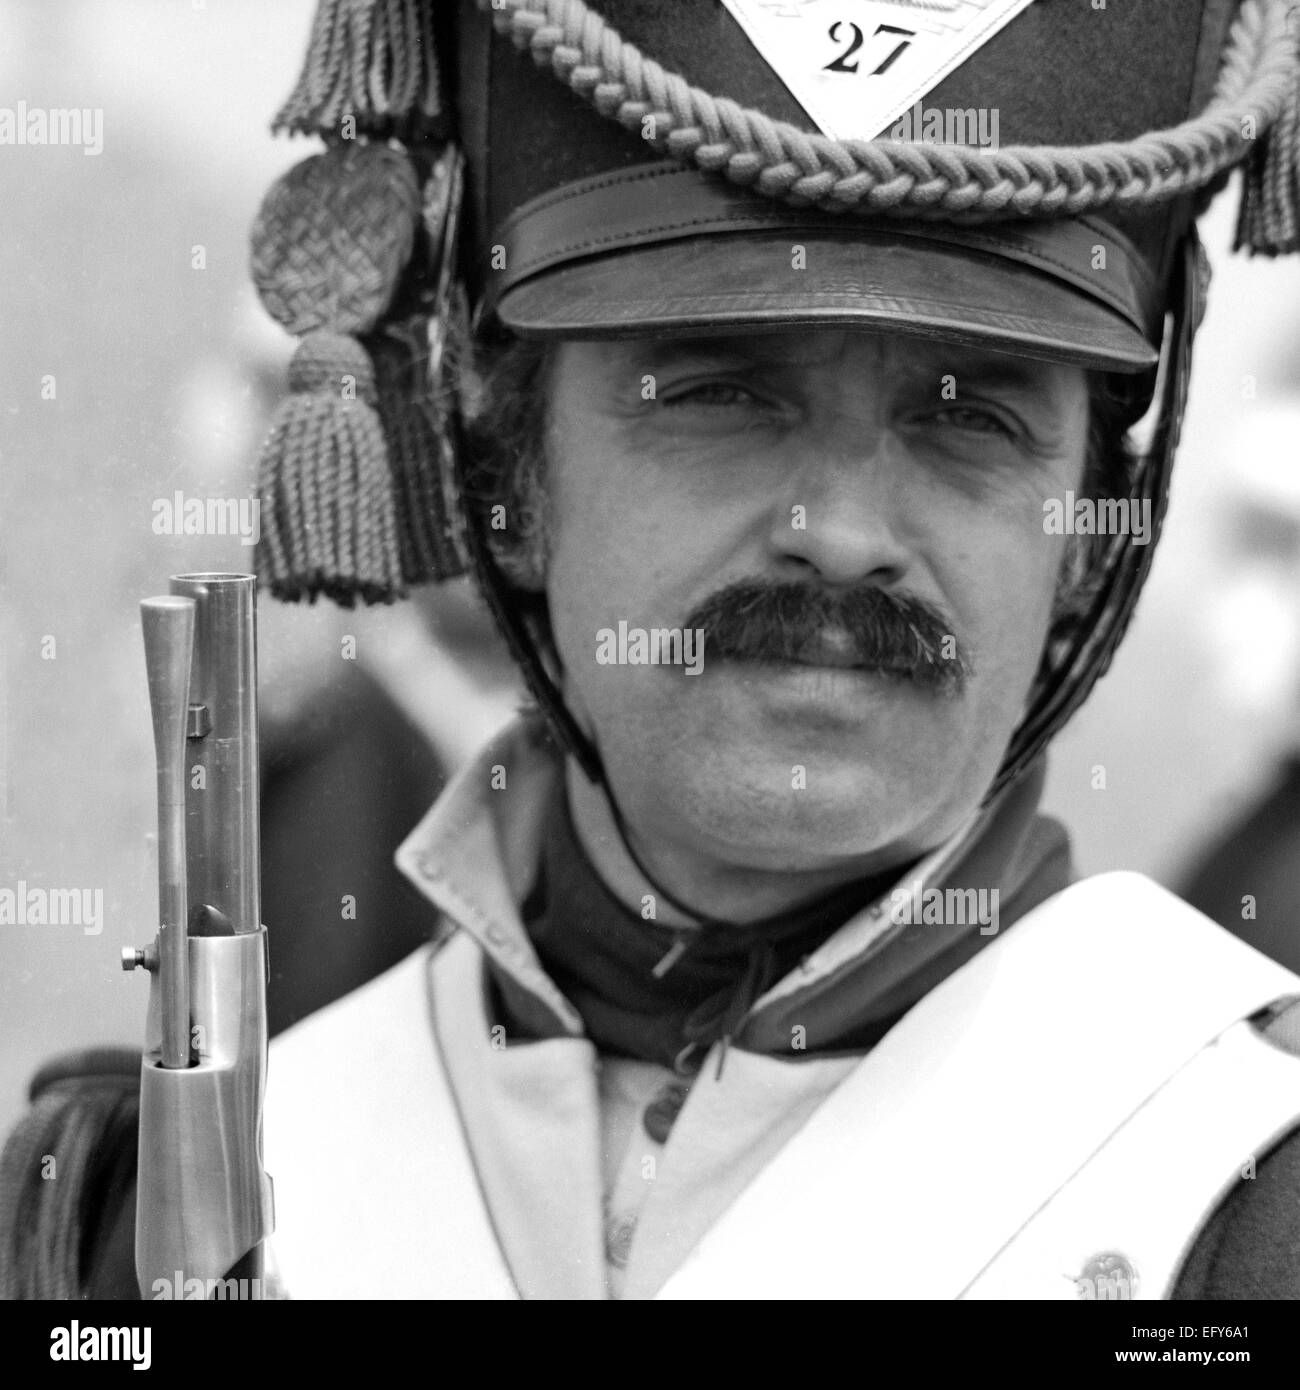 WATERLOO, BELGIUM -CIRCA 1990: Actor in costume during the reenactment of the Battle of Waterloo that in 1815 ended - Stock Image